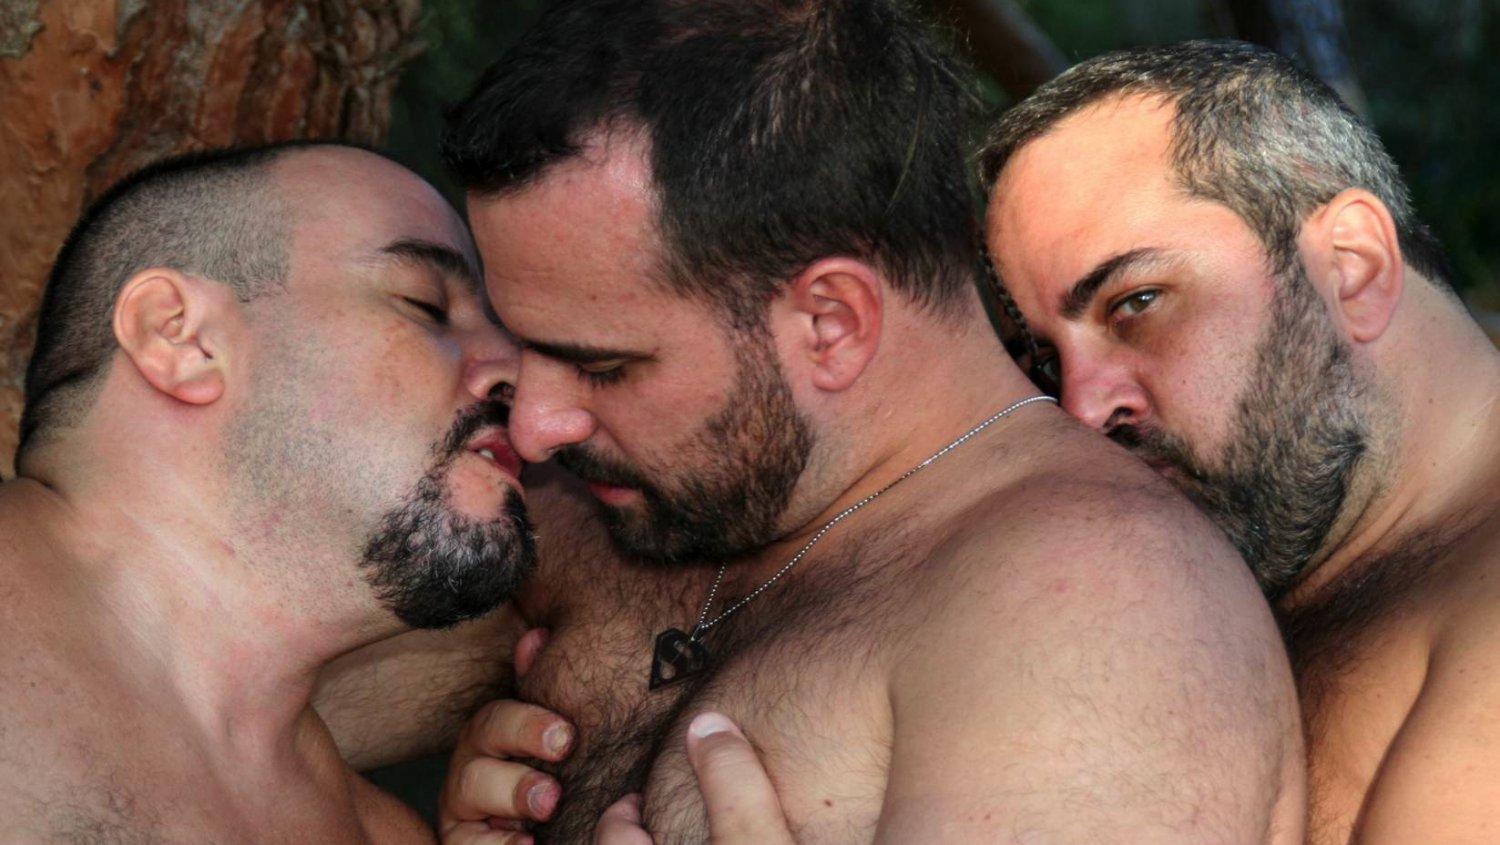 Bears of Spain DVD teaser! - BearFilms Dating someone who is already in a relationship